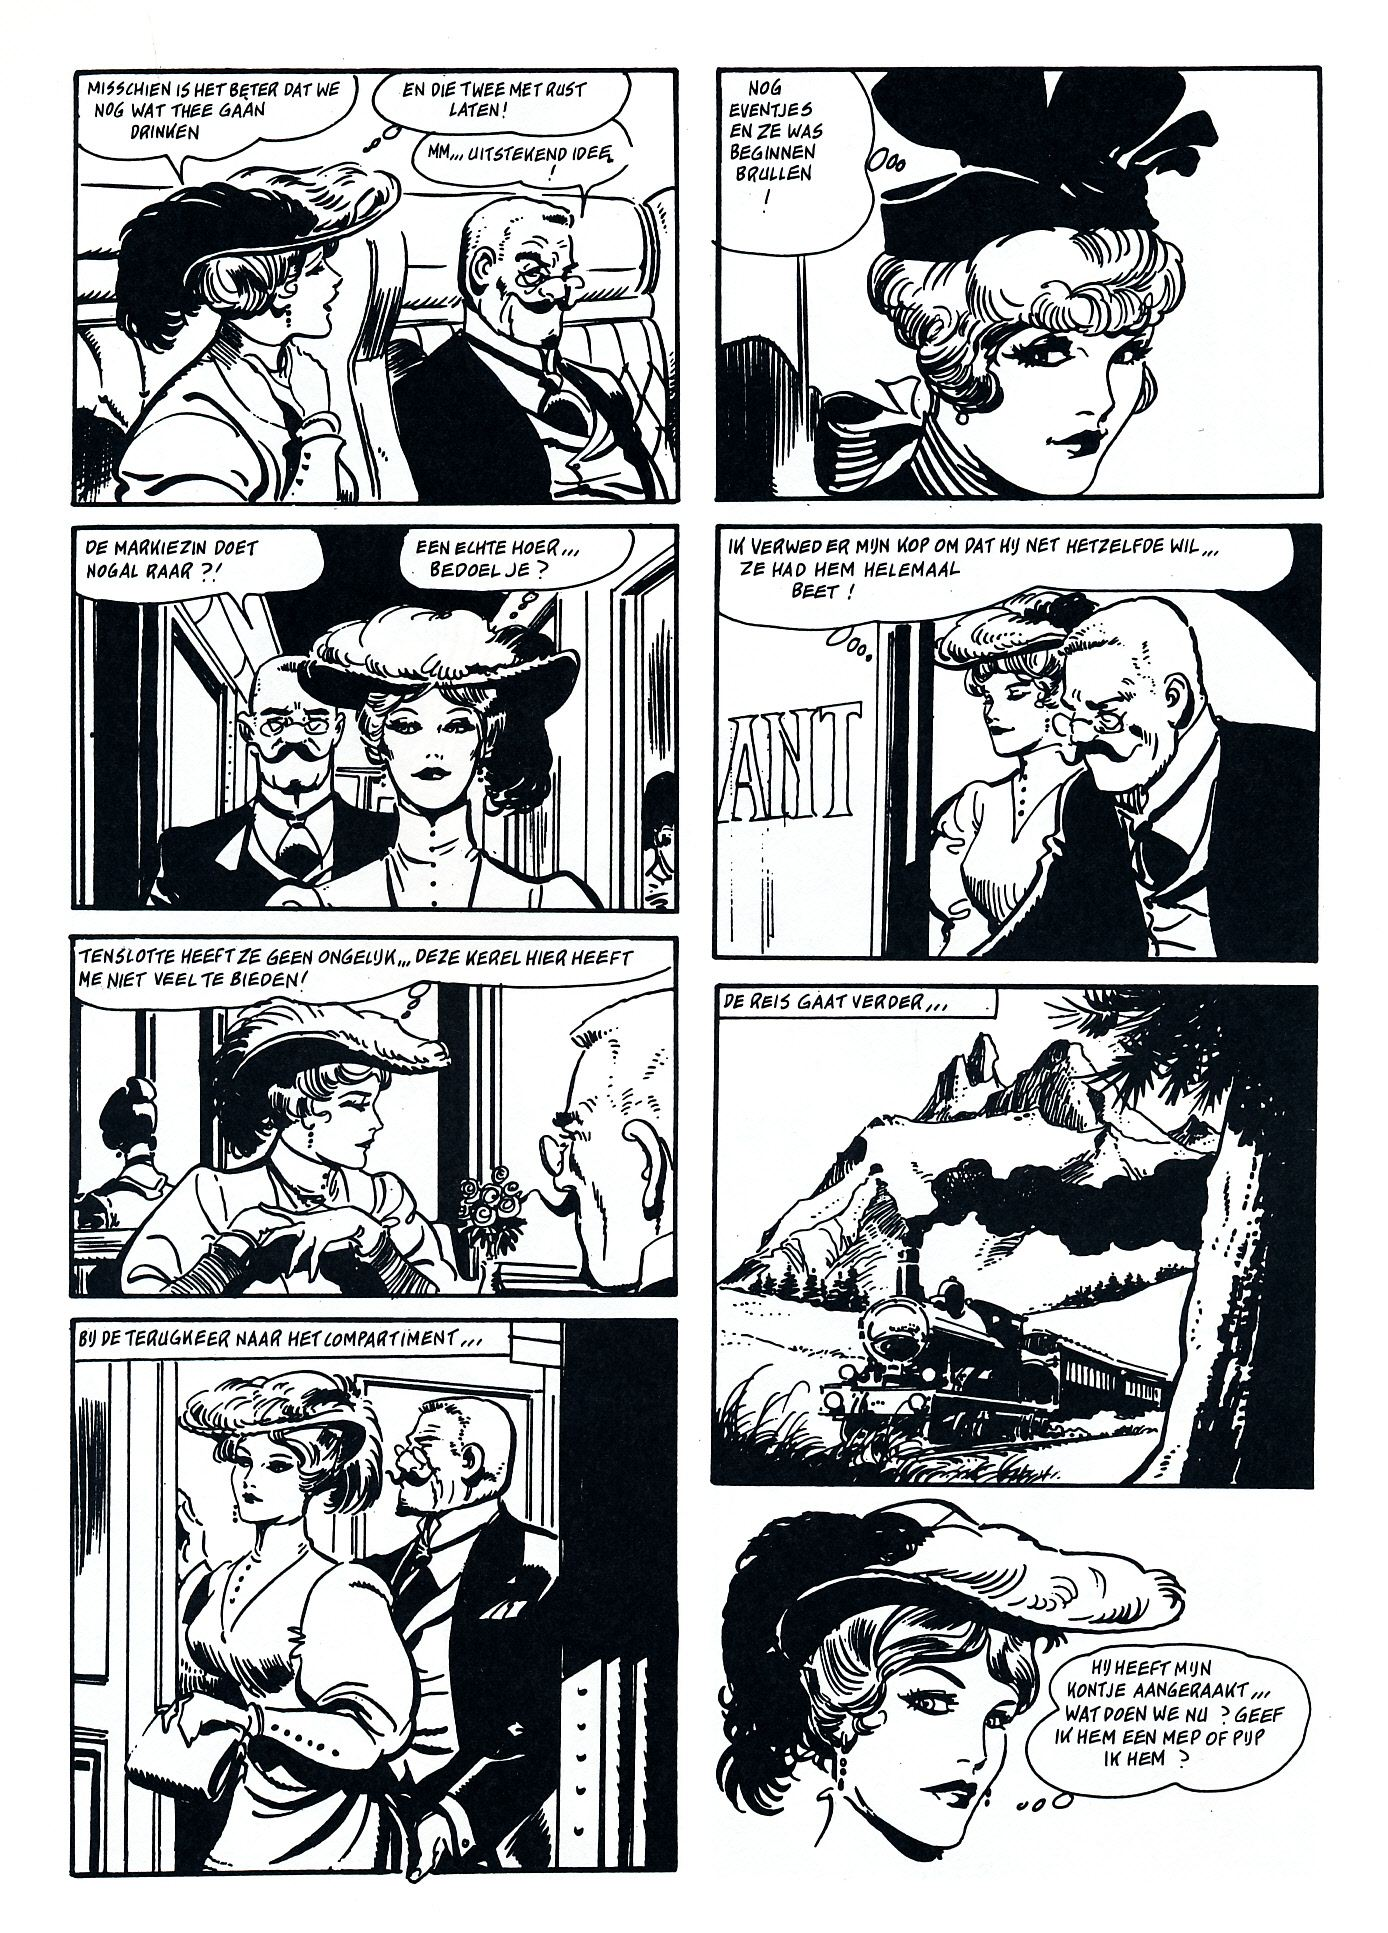 Casino 1 Blue Train van Leone Frollo